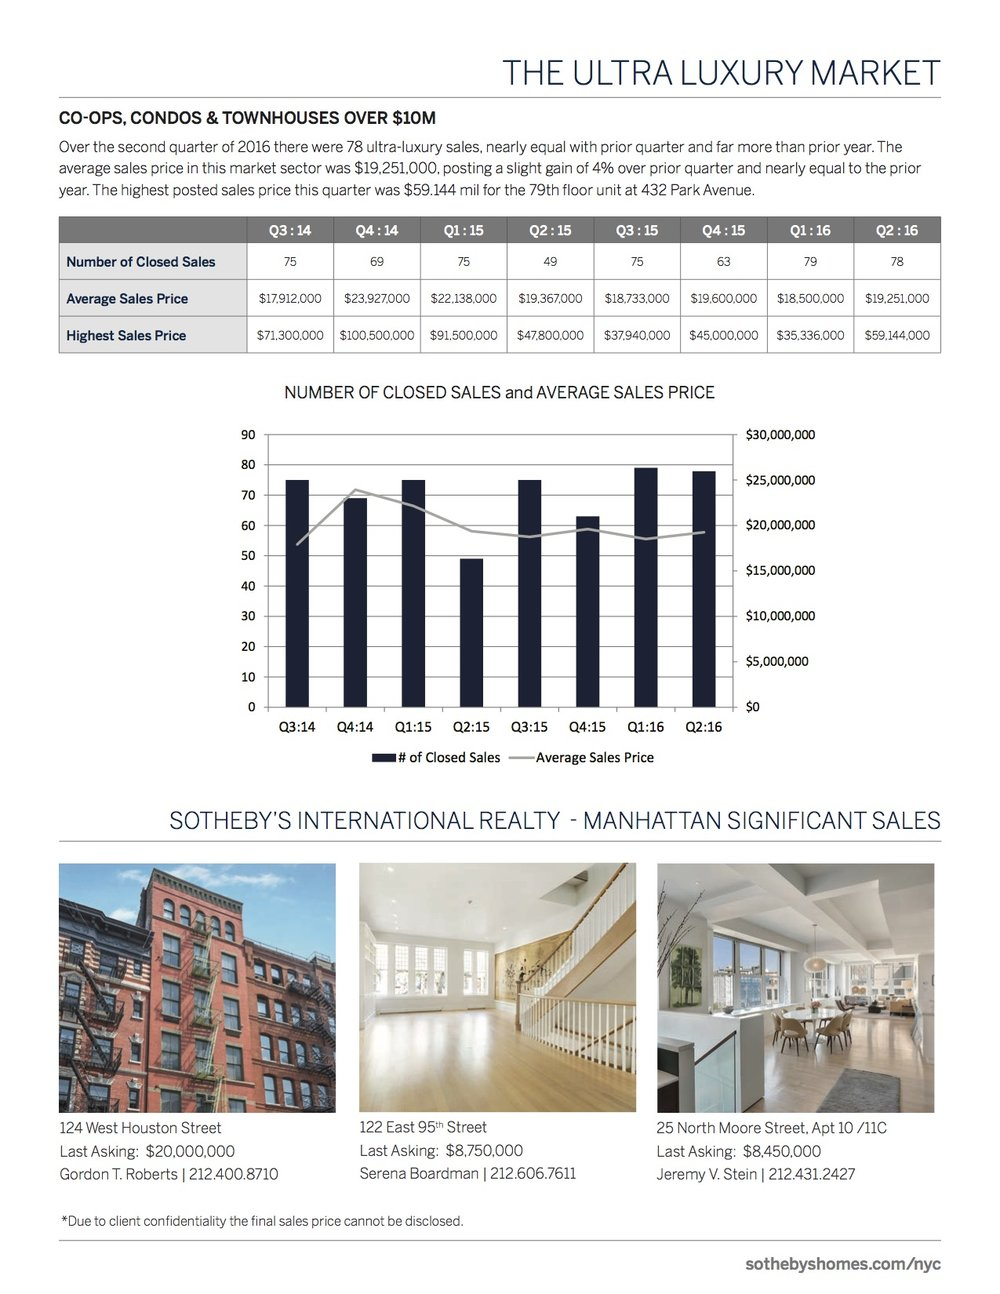 SothebysInternationalRealty_Manhattan_MarketReport_2016_Q2_4.jpg